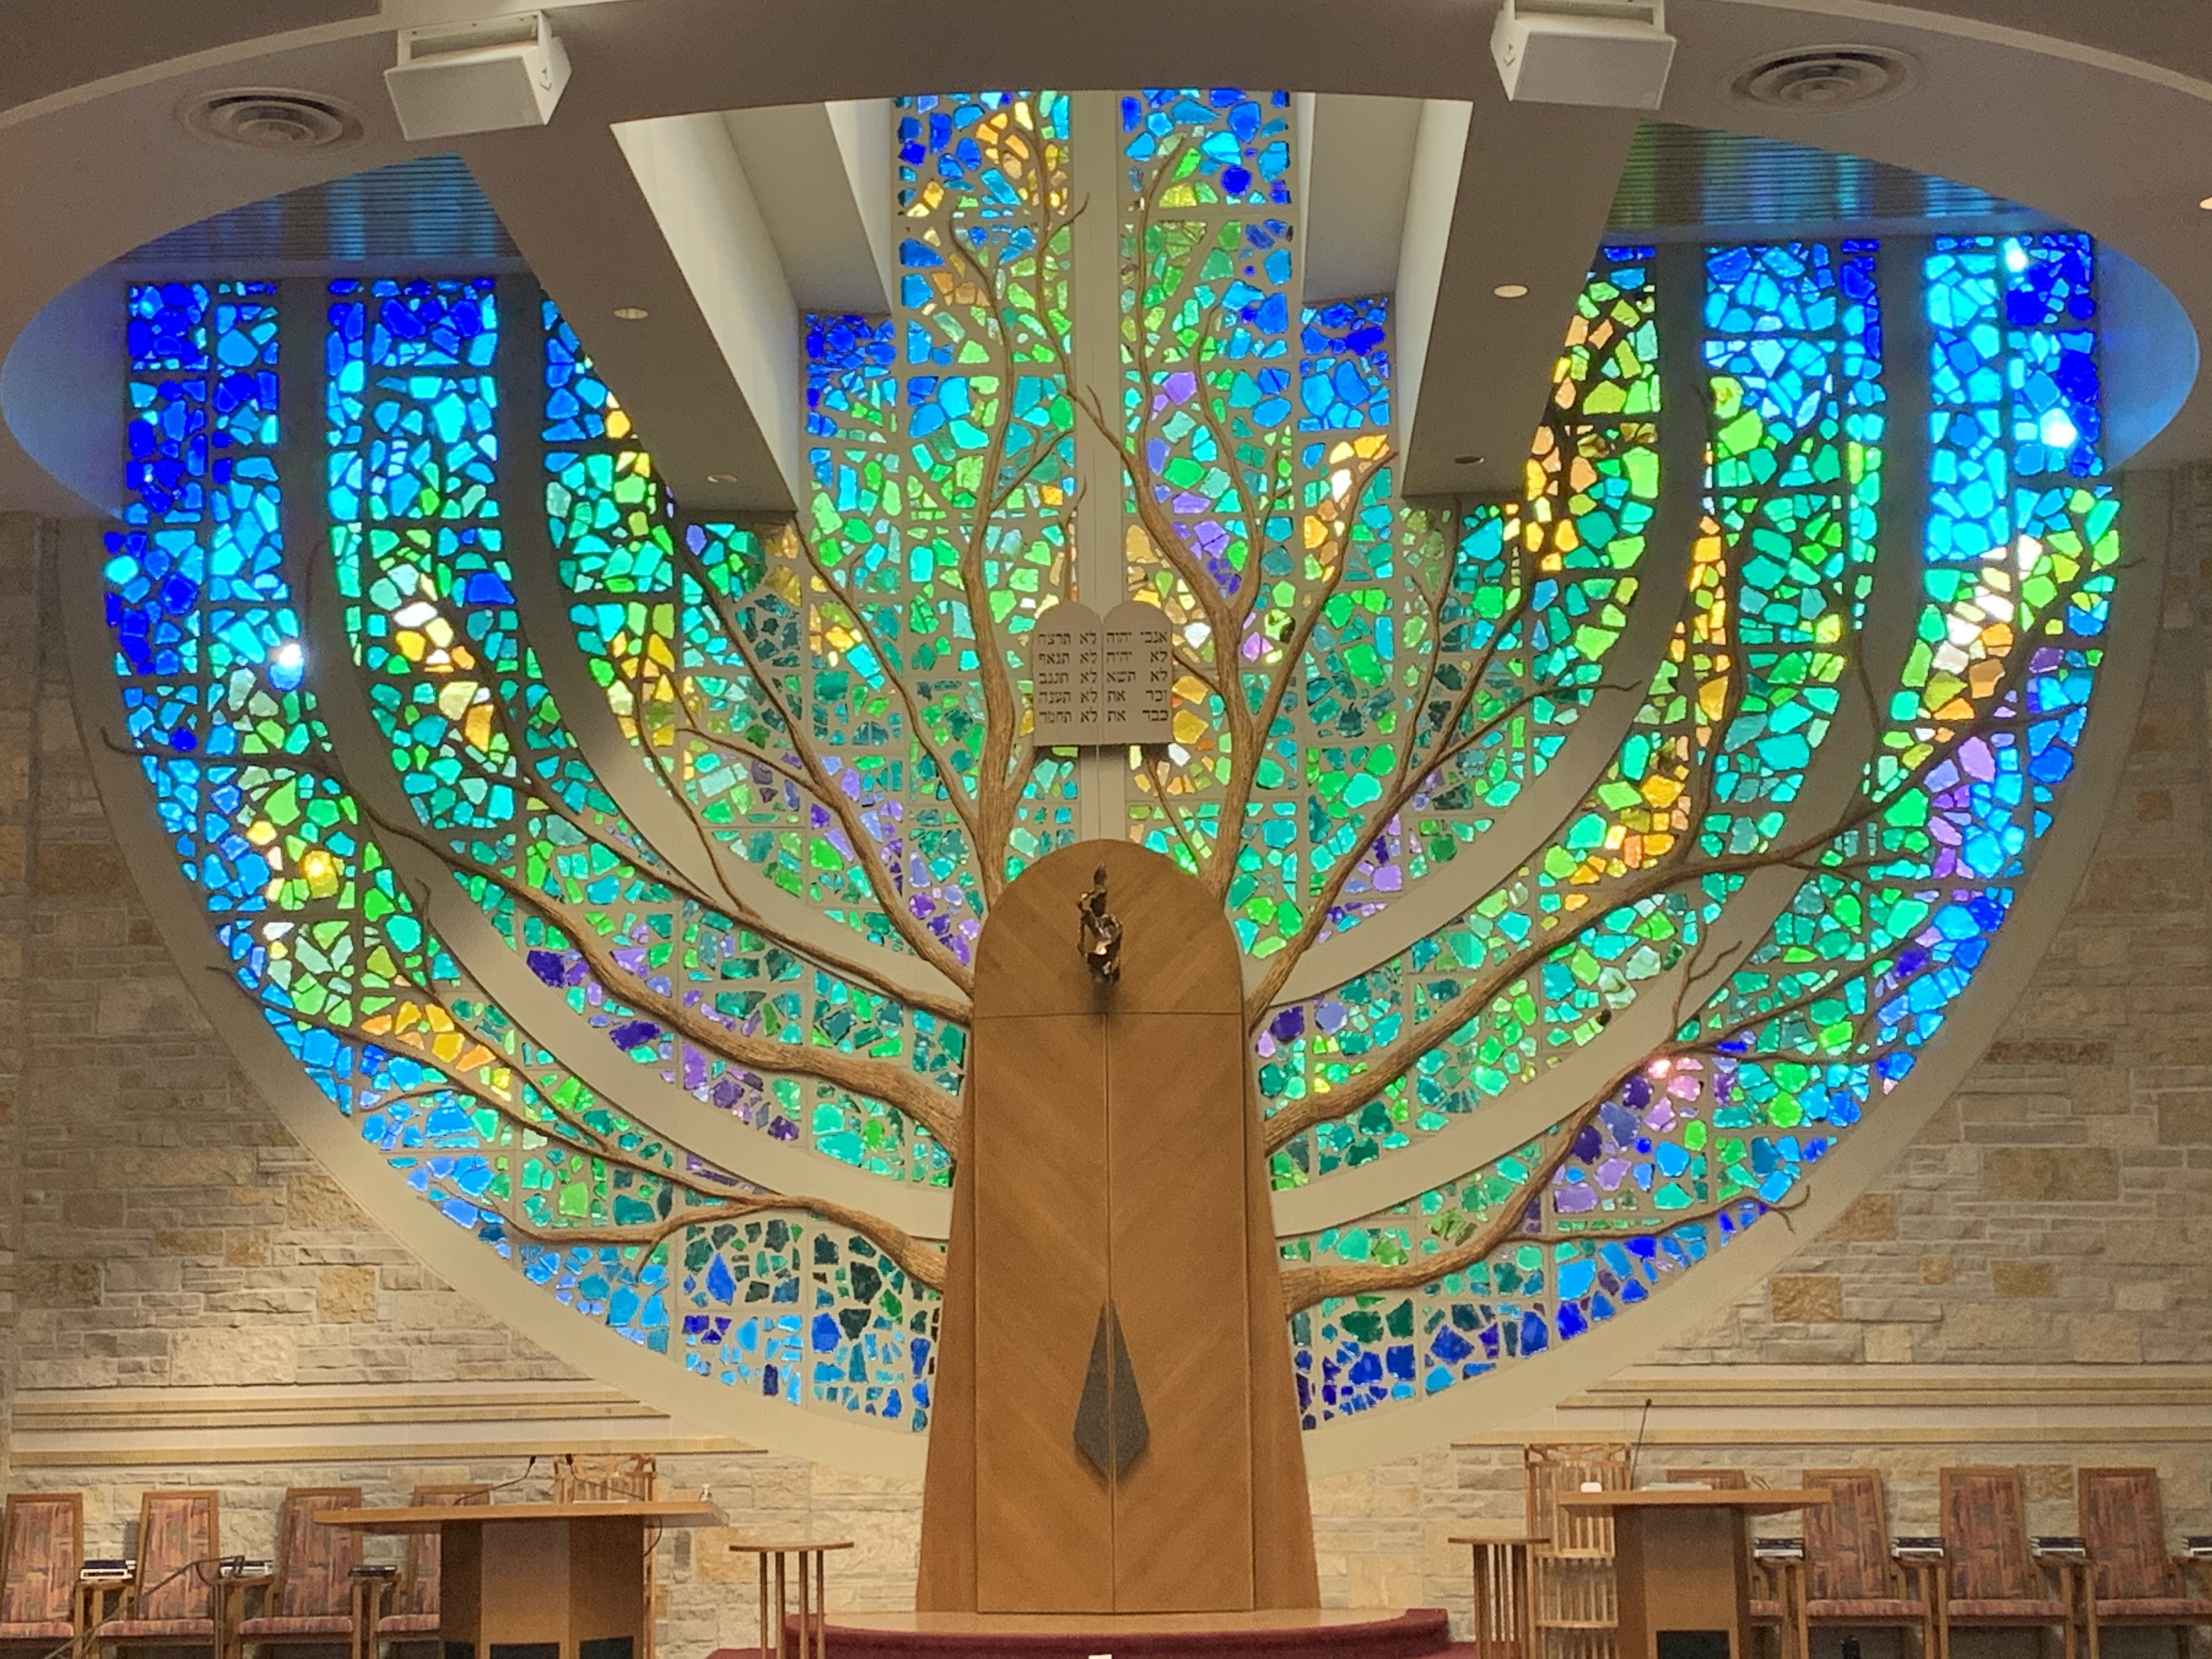 """<a href=""""https://www.cong-shalom.org/about-us/holy-place/descriptions#""""                                     target="""""""">                                                                 <span class=""""slider_title"""">                                     Tree of Life                                </span>                                                                 </a>"""